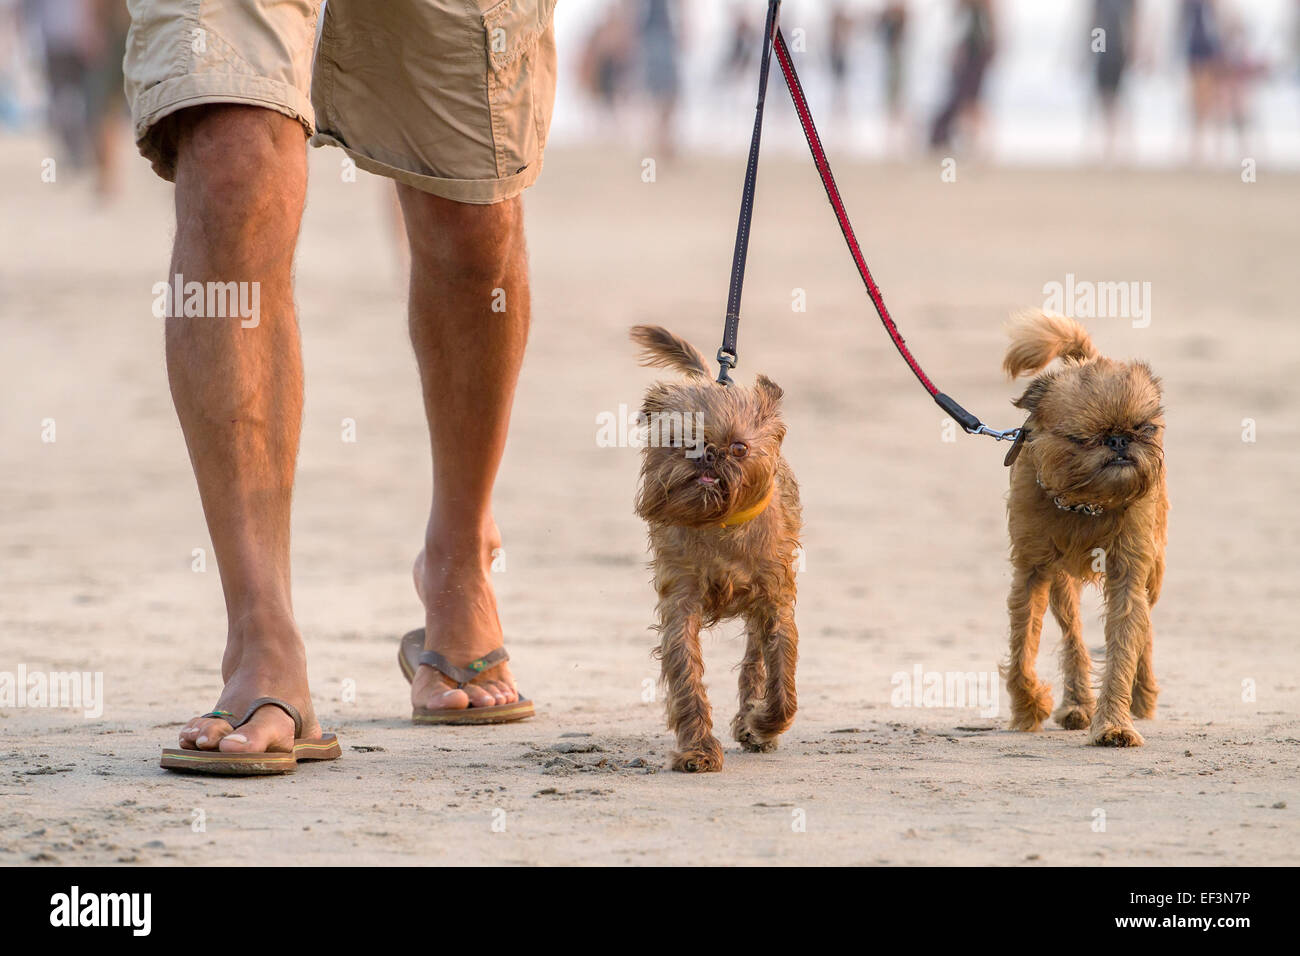 Man walking on the beach with two funny small dogs - Stock Image